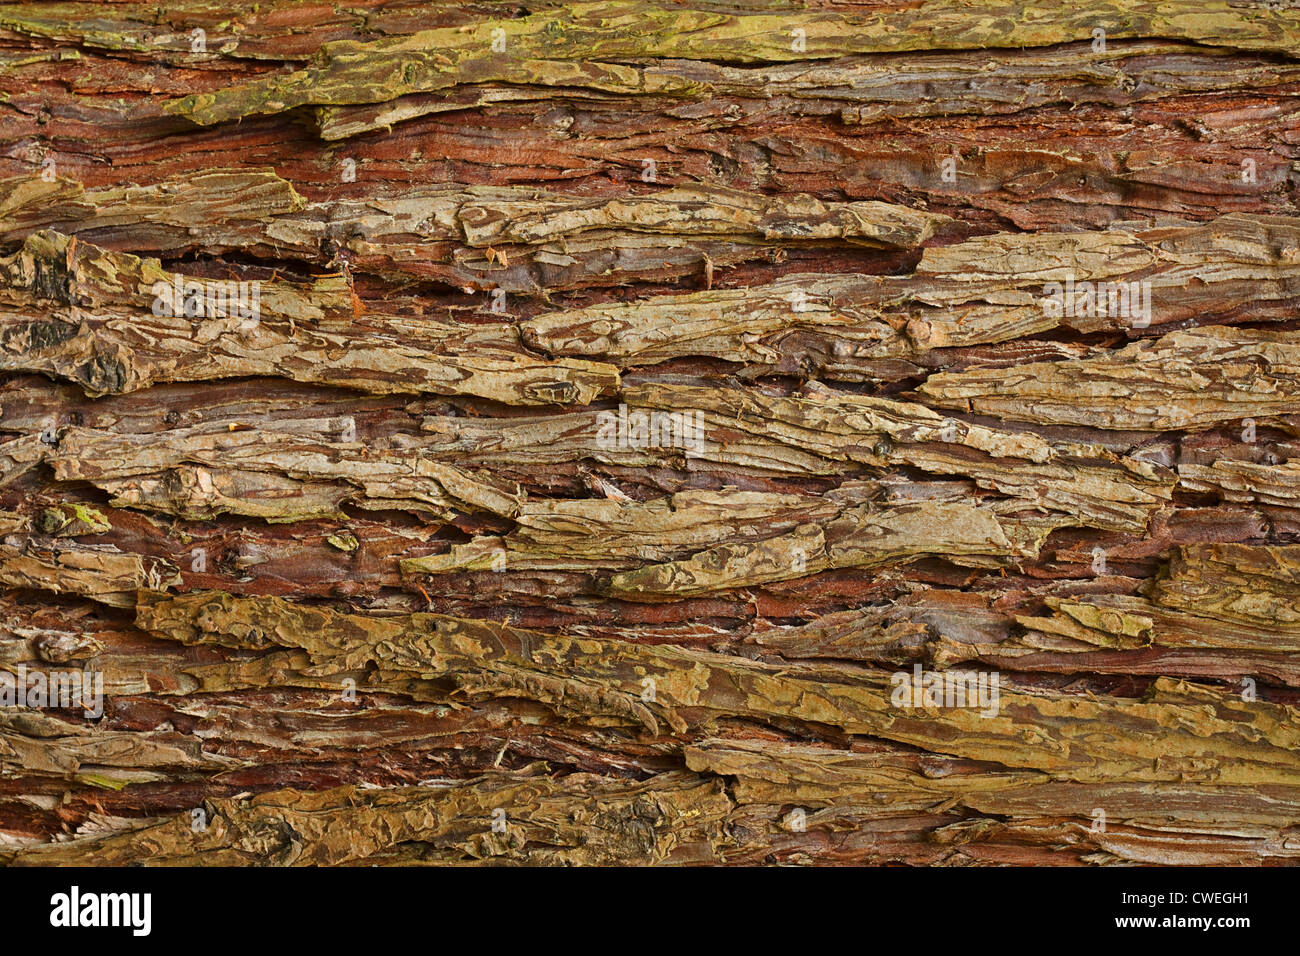 Cypress tree bark background showing relief and texture - Stock Image